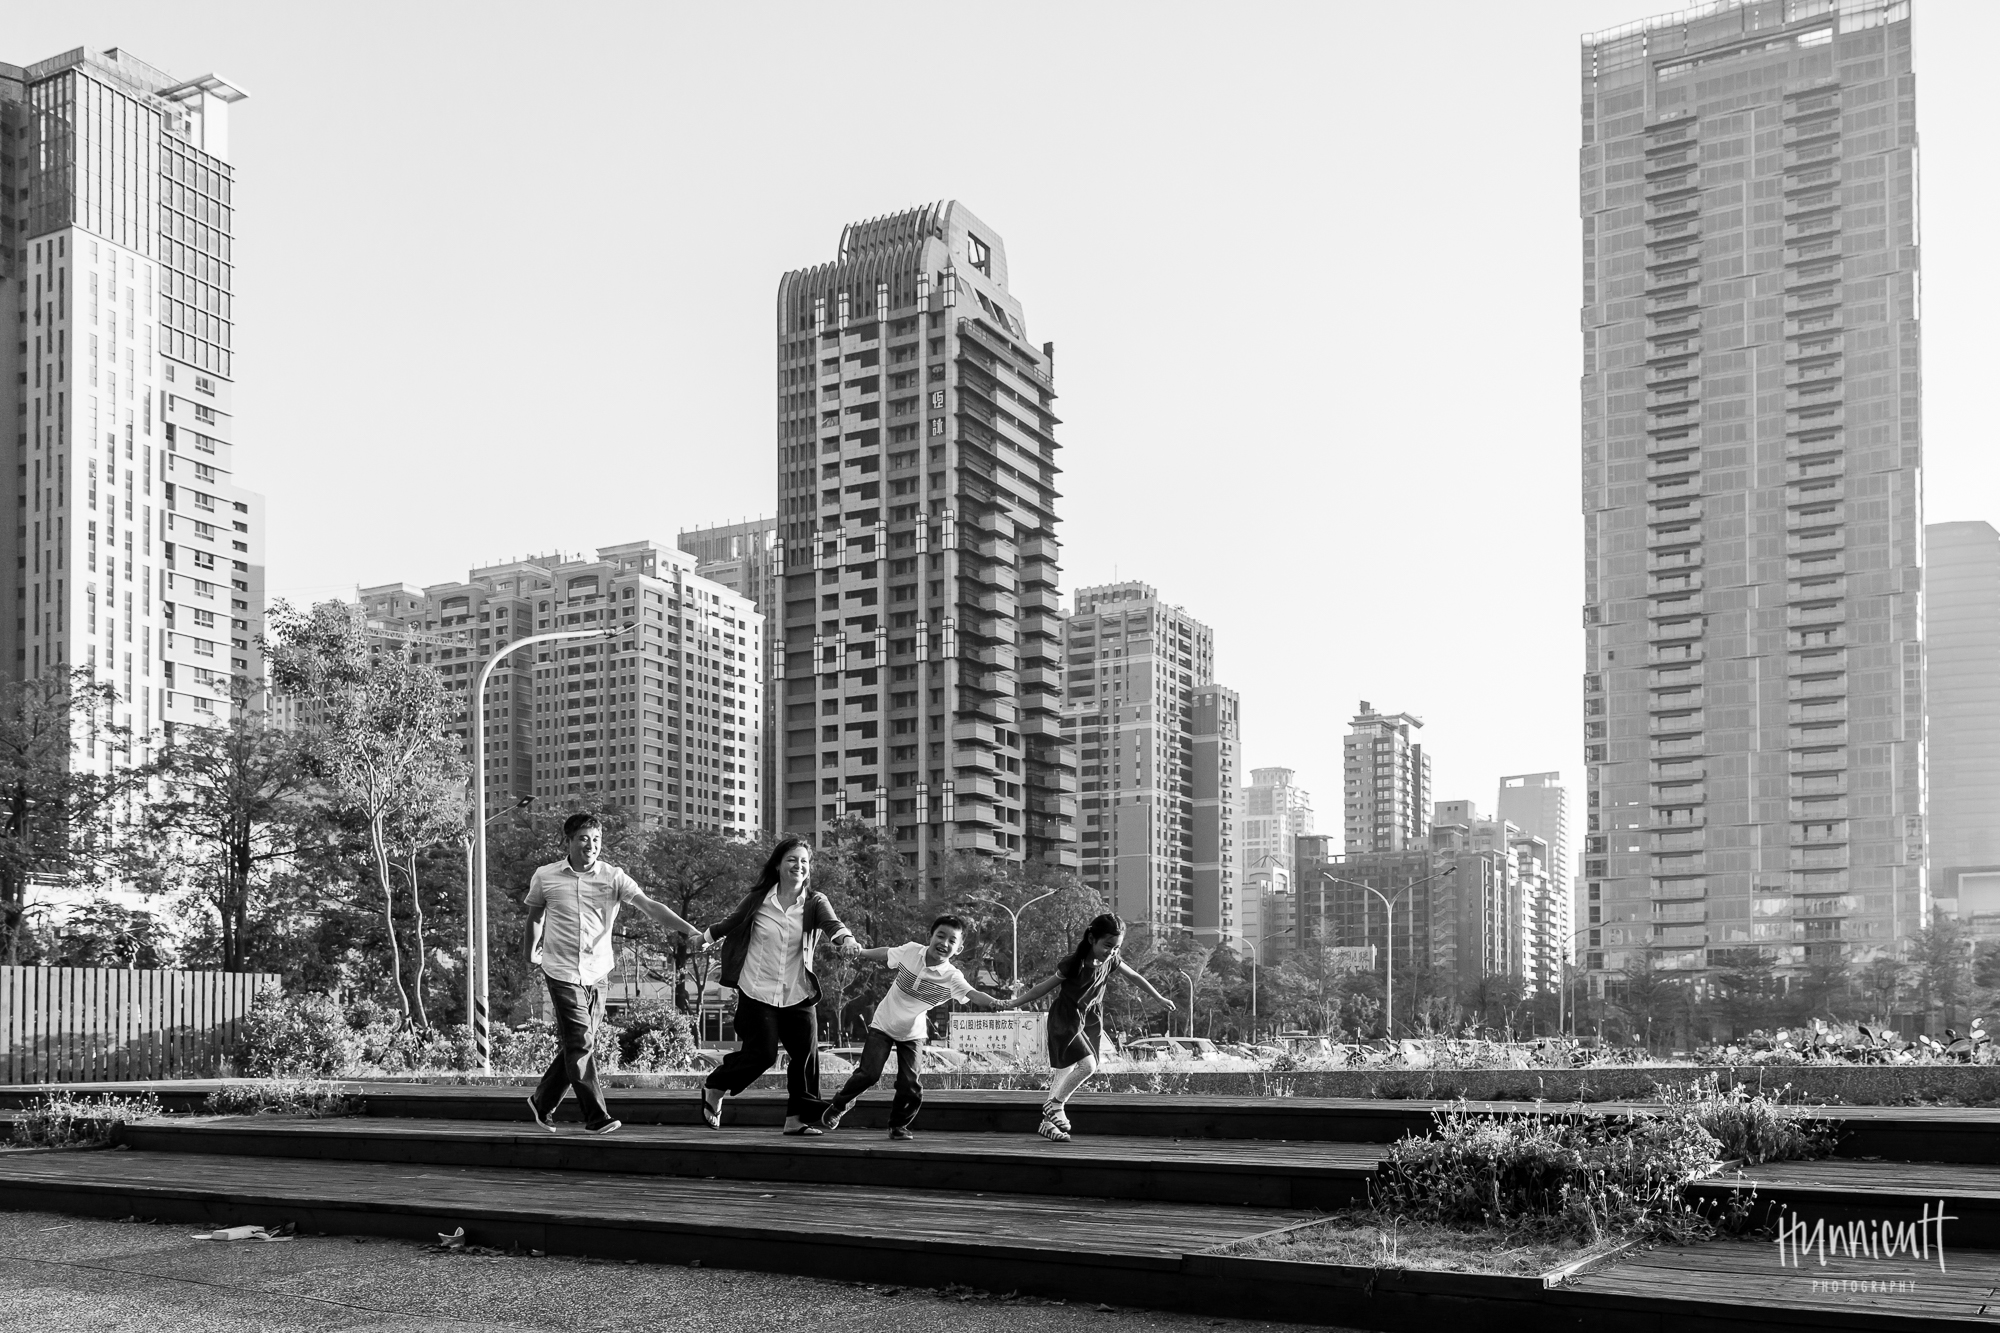 Outdoor-Explore-Neighborhood-Modern-Urban-GoldenHour-Lifestyle-Family-Photography-Taichung-Taiwan-Rebecca-Hunnicutt-Farren-Hunnicutt-Photography-23